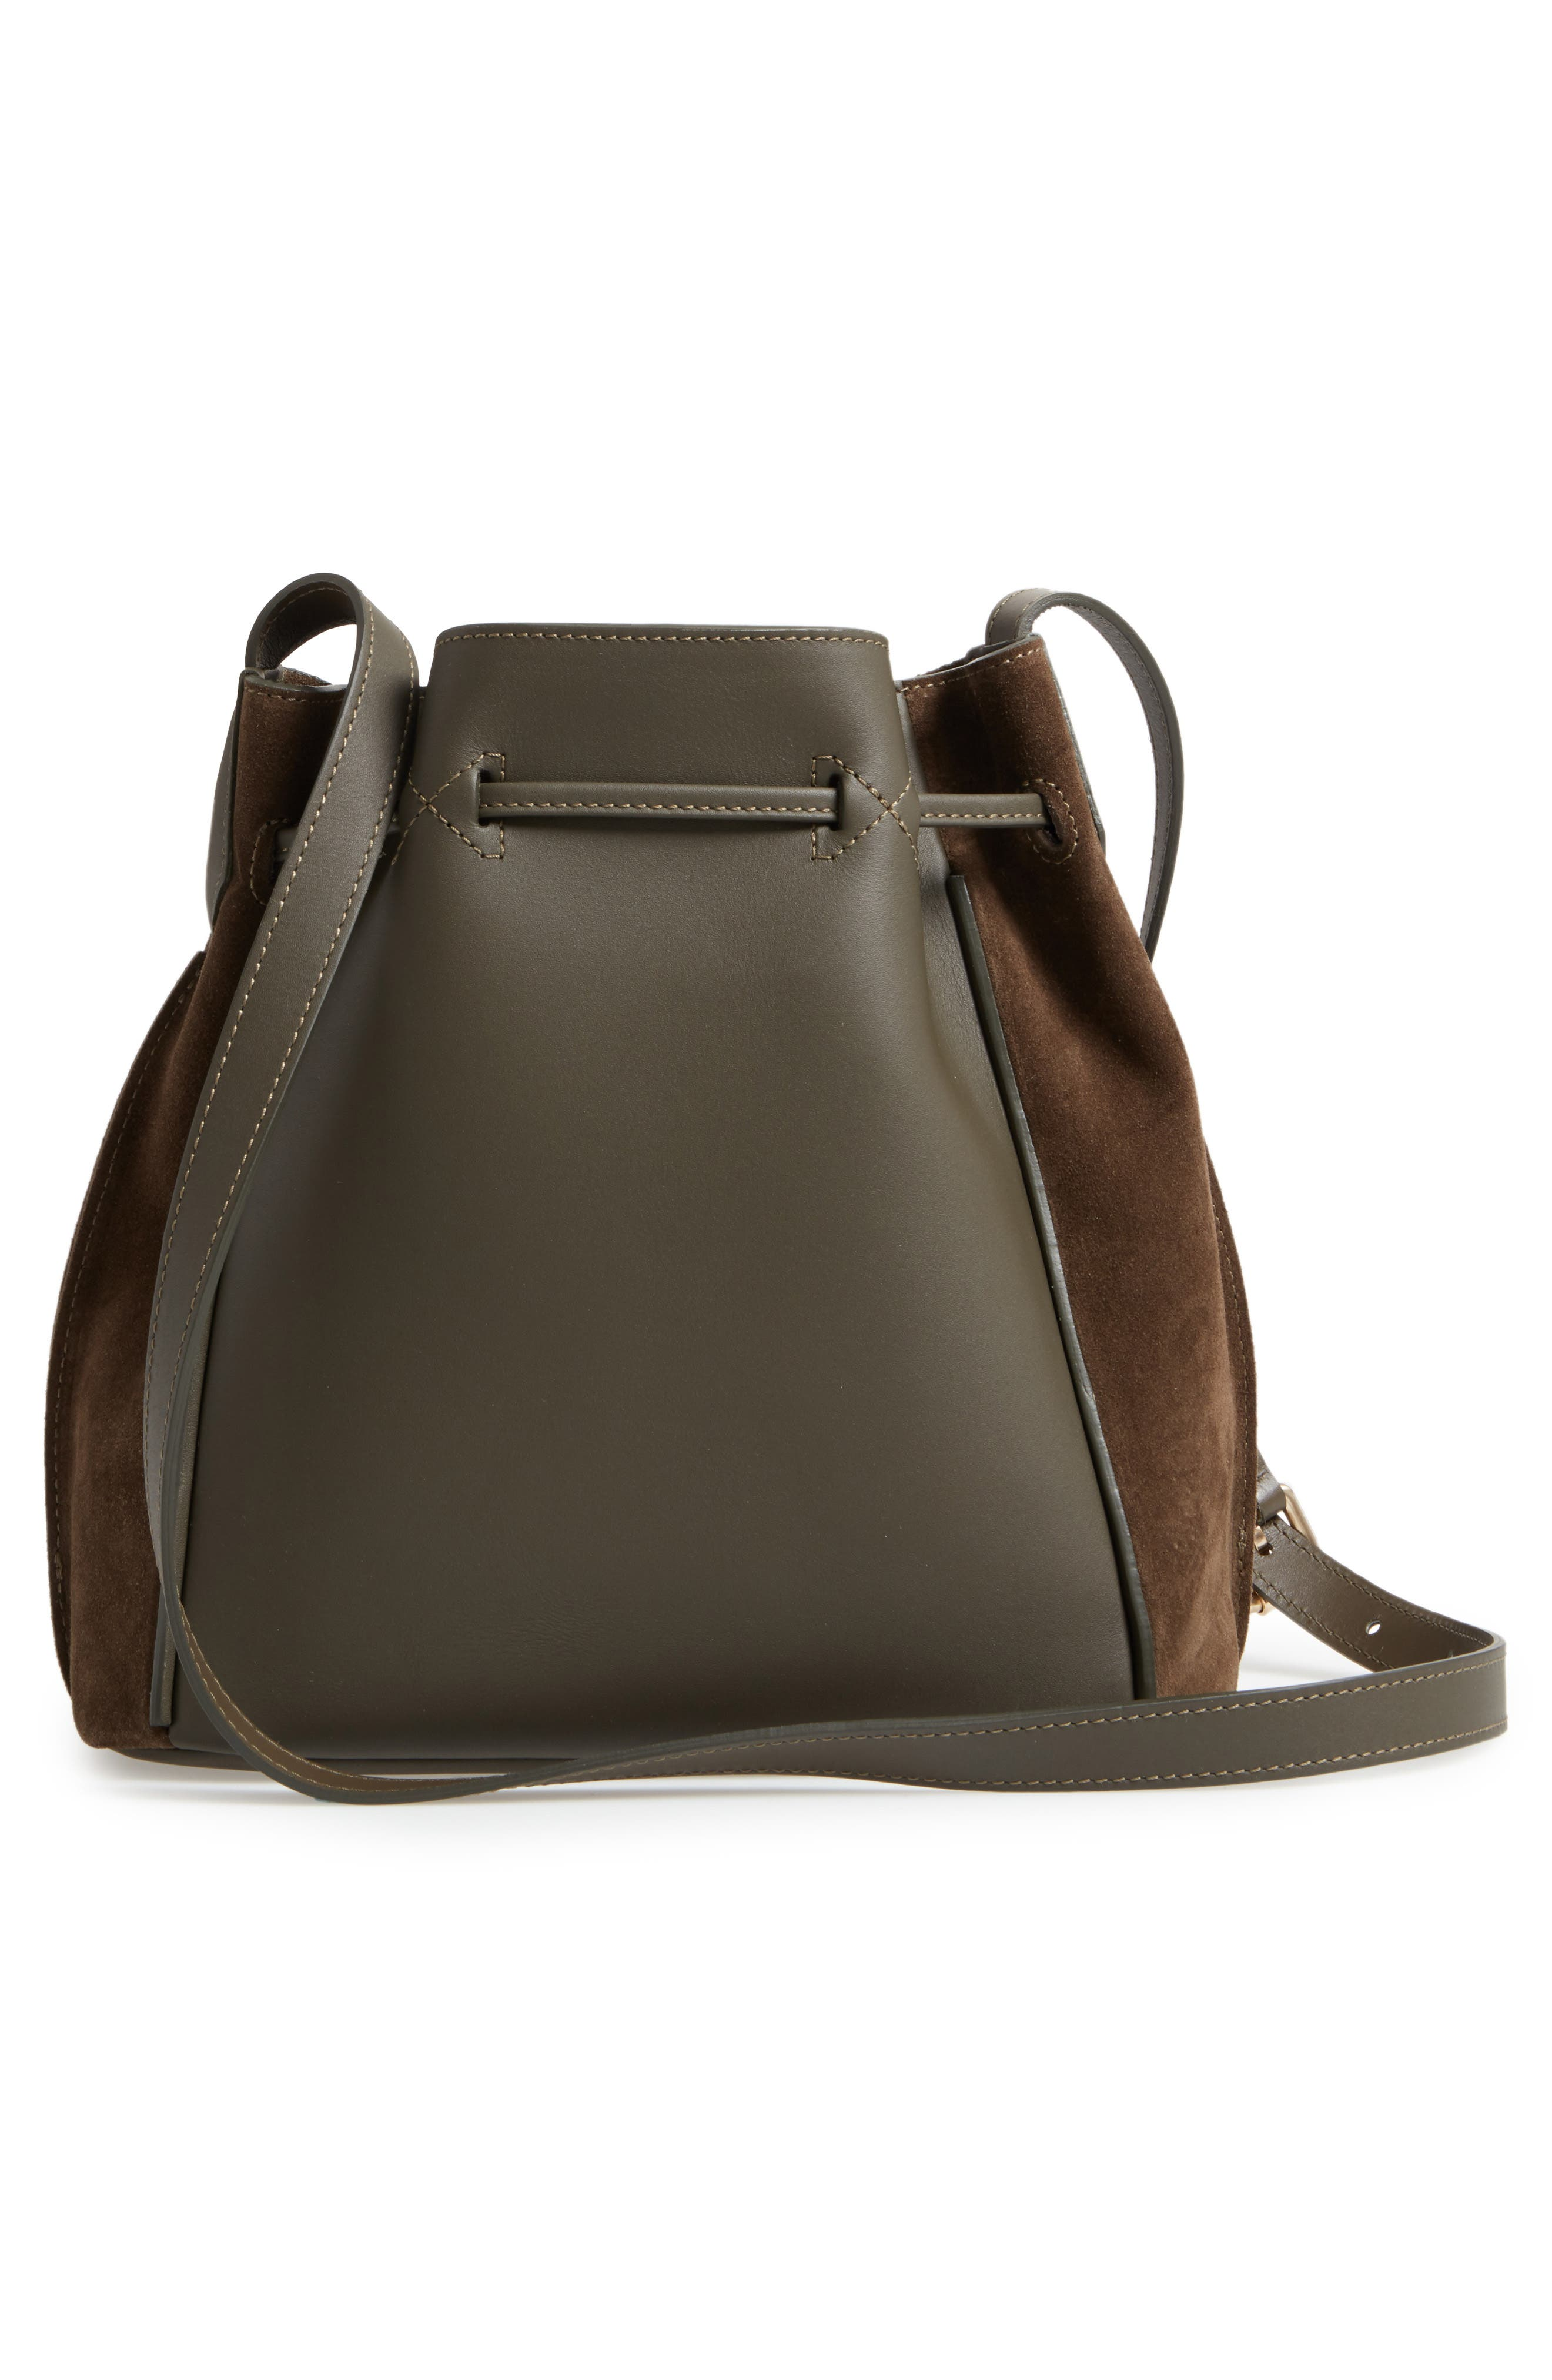 Alternate Image 2  - Longchamp Small Penelope Leather Tote